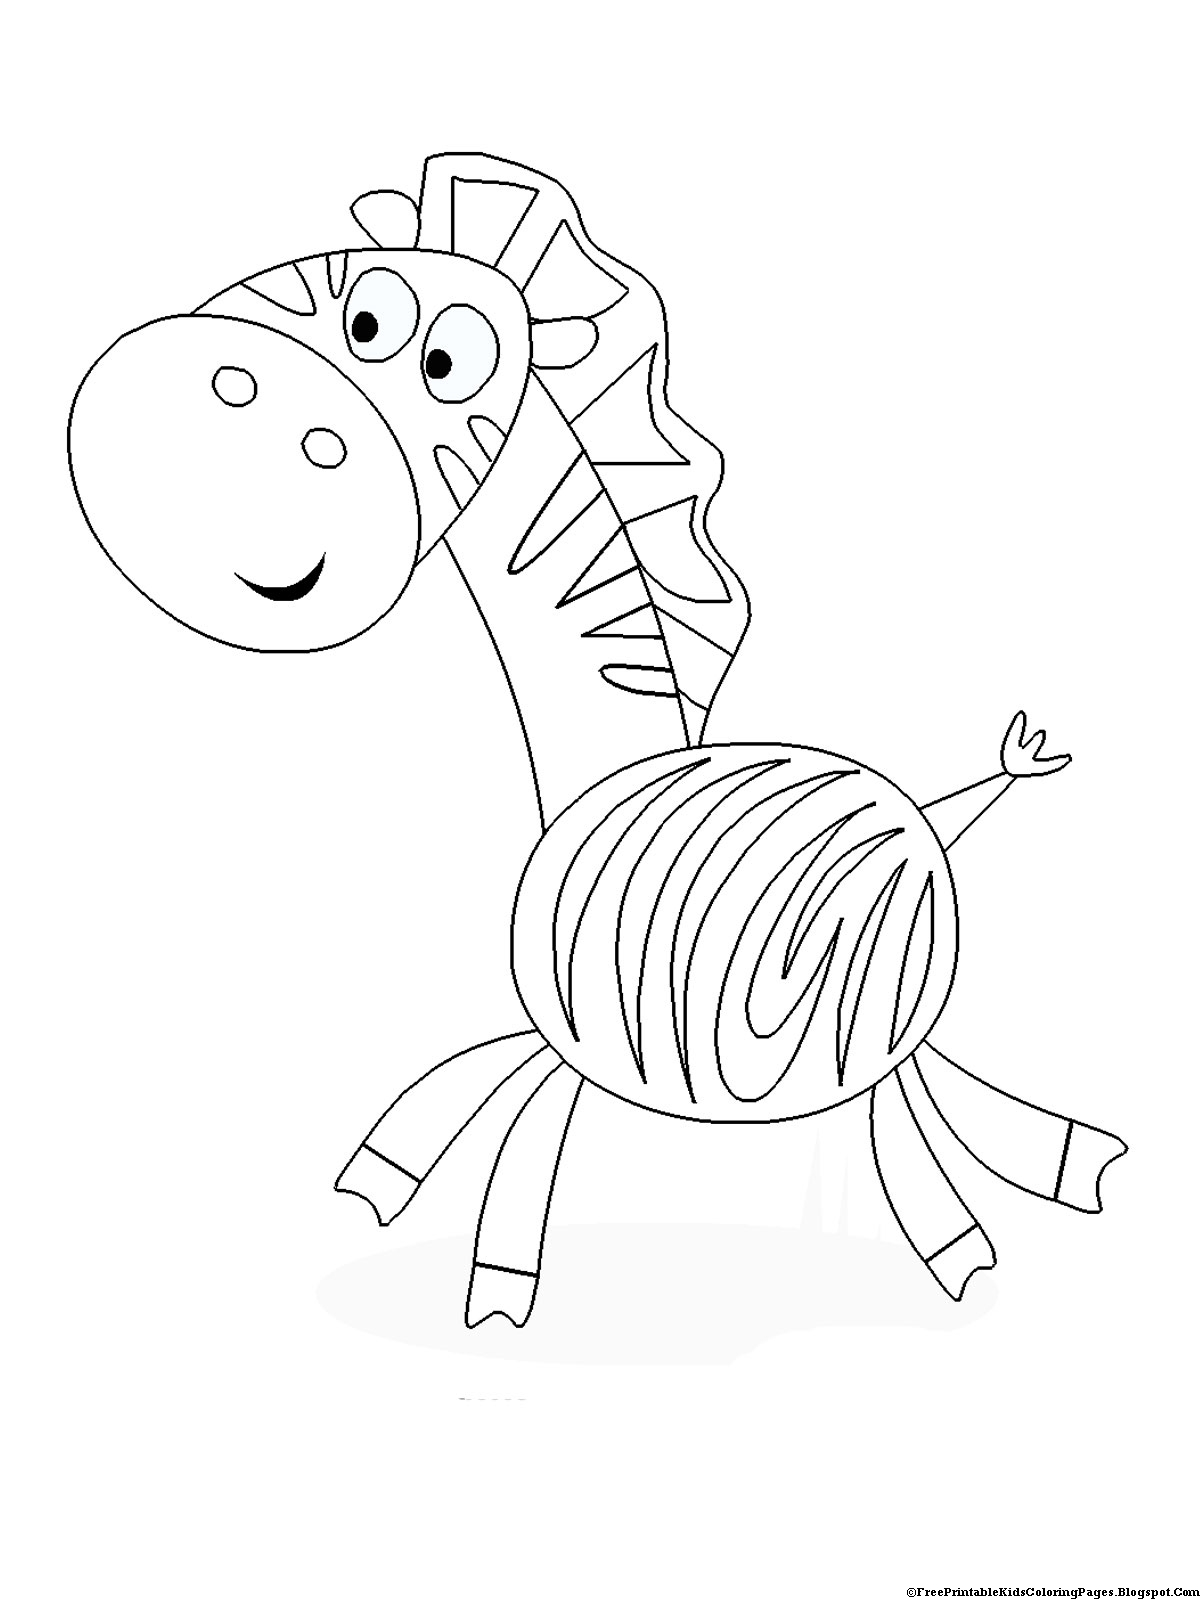 coloring pages for kids to print free printable caillou coloring pages for kids cool2bkids to pages kids coloring print for